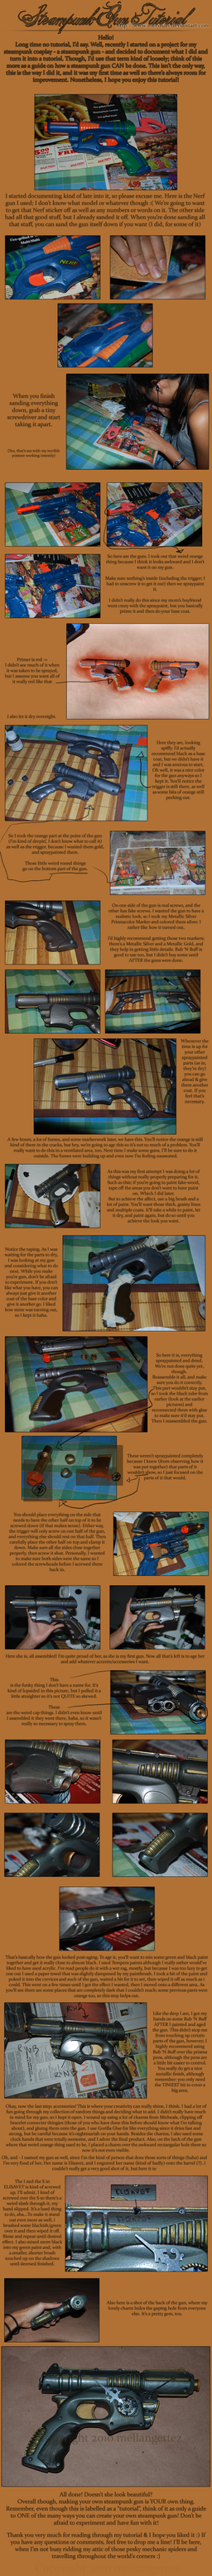 Steampunk Gun Tutorial by Merusan